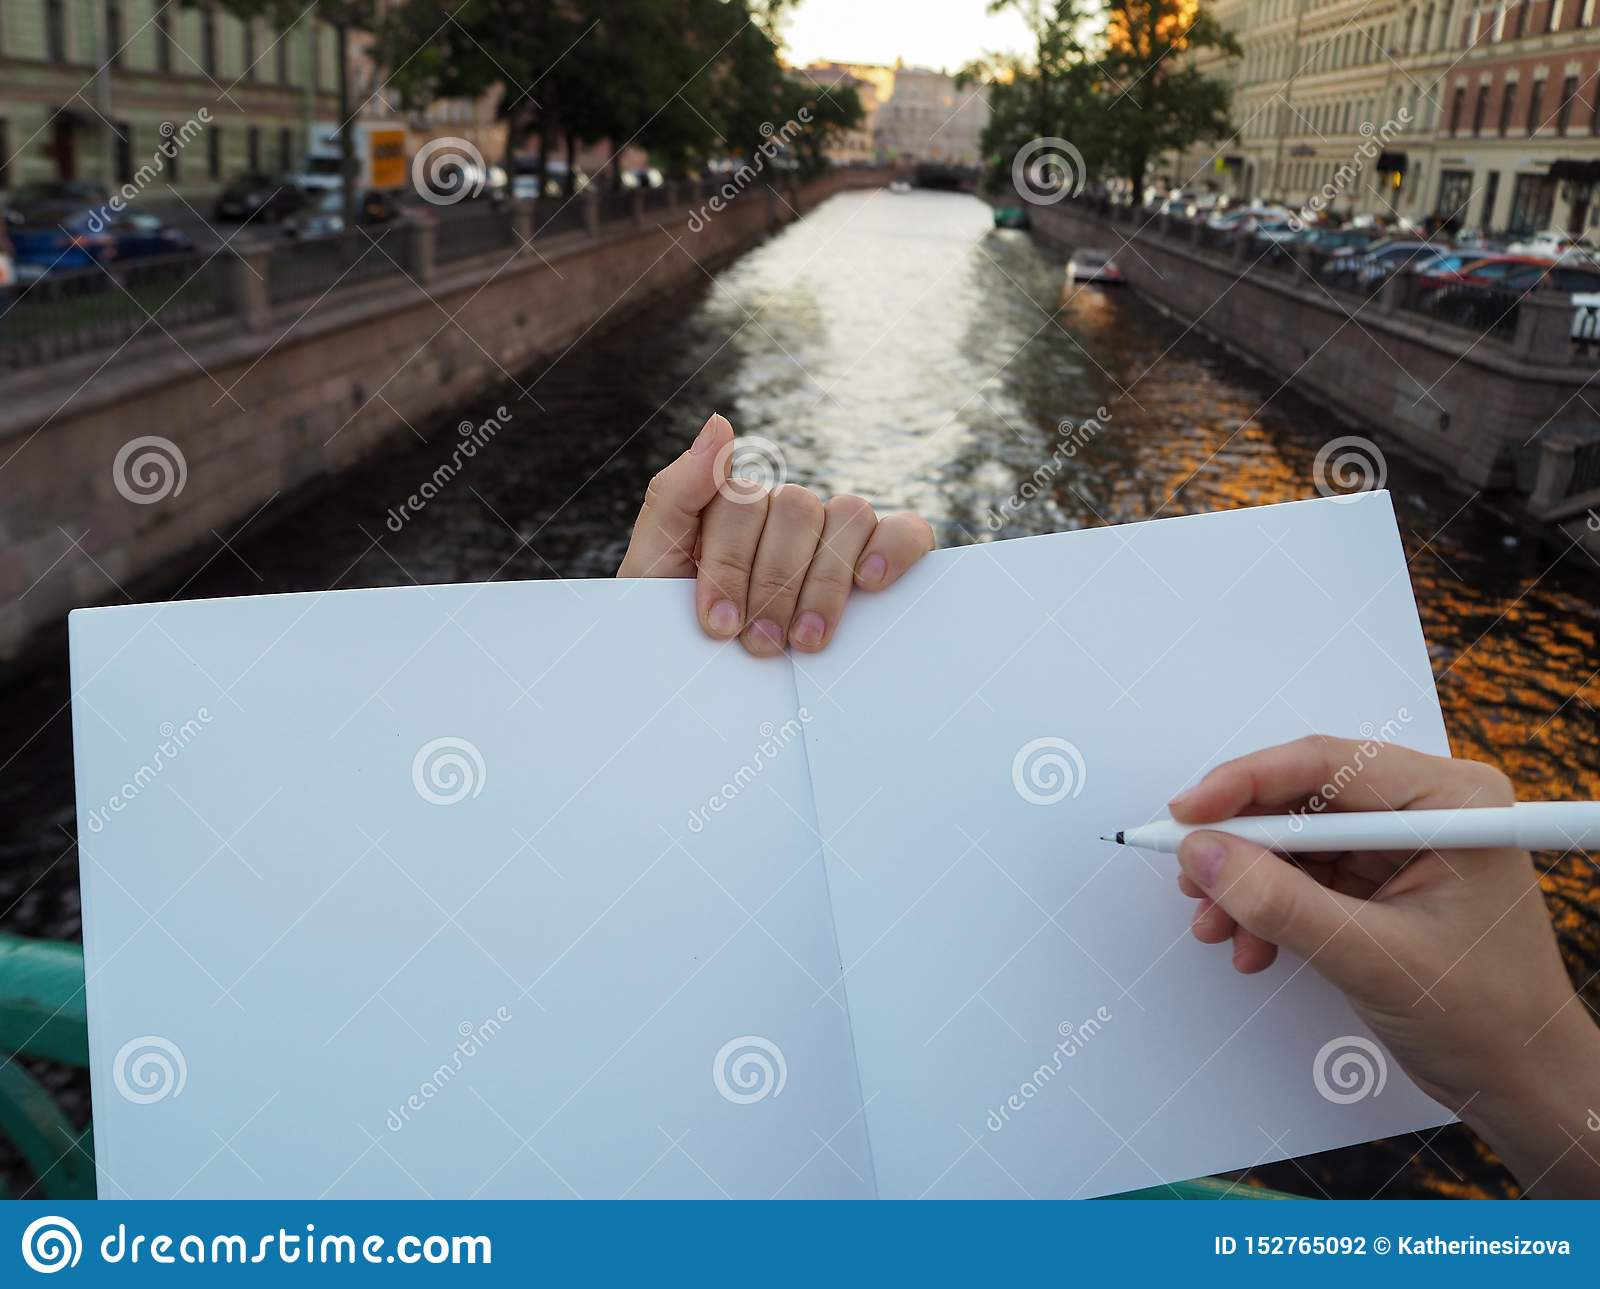 Mockup of person hand holding blank white notebook preparing to write down his or hers ideas.